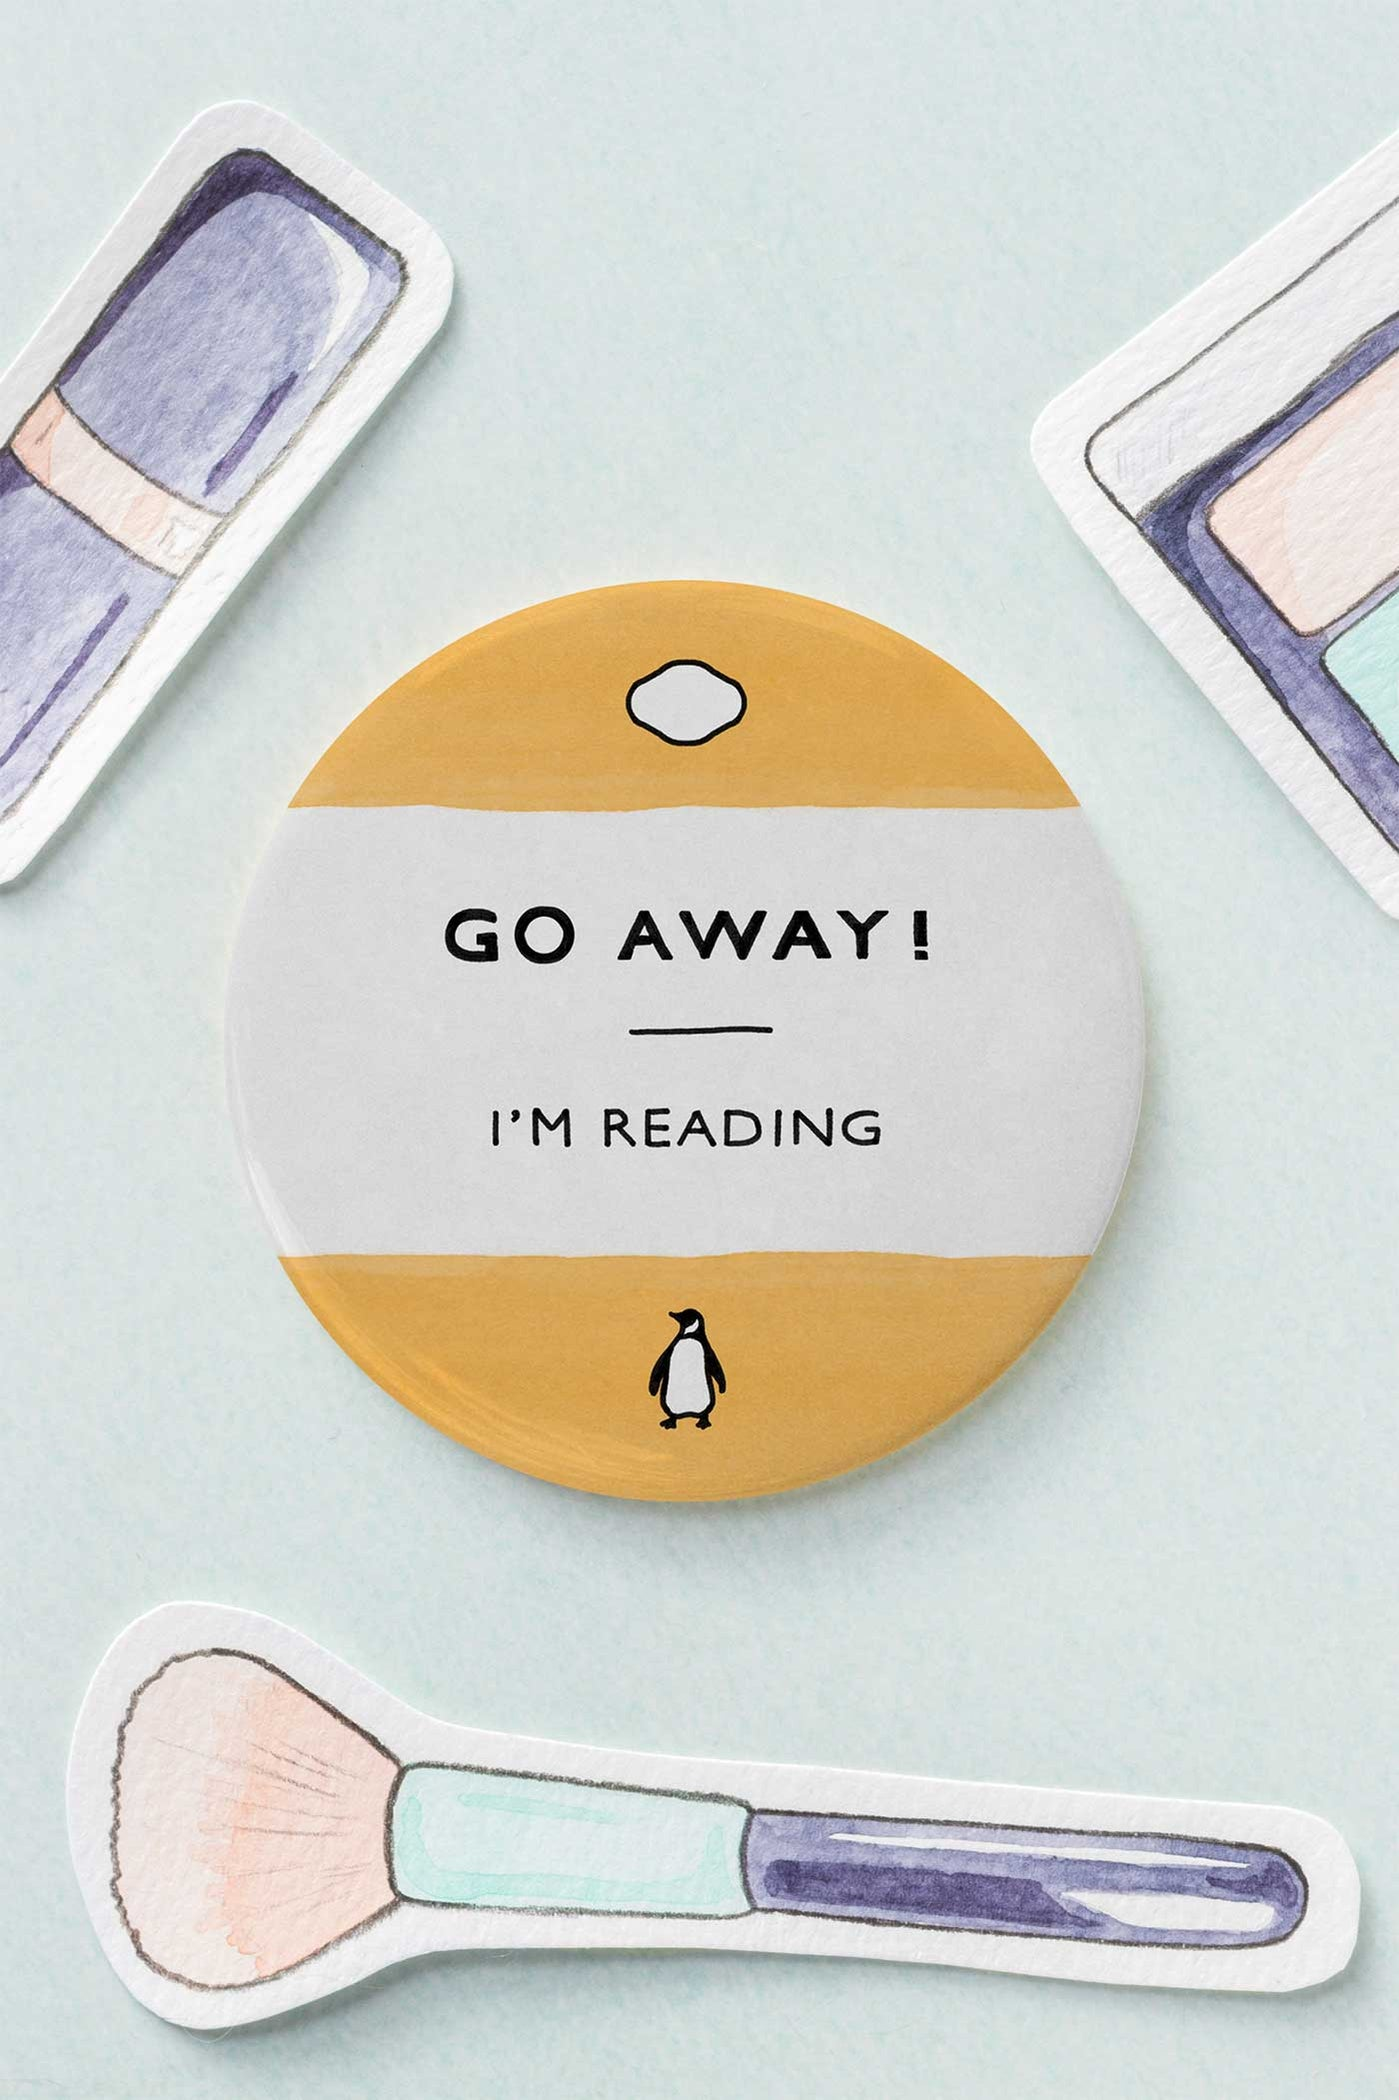 Go Away! I'm Reading Penguin Classics Inspired Pocket Mirror - A Rose Cast